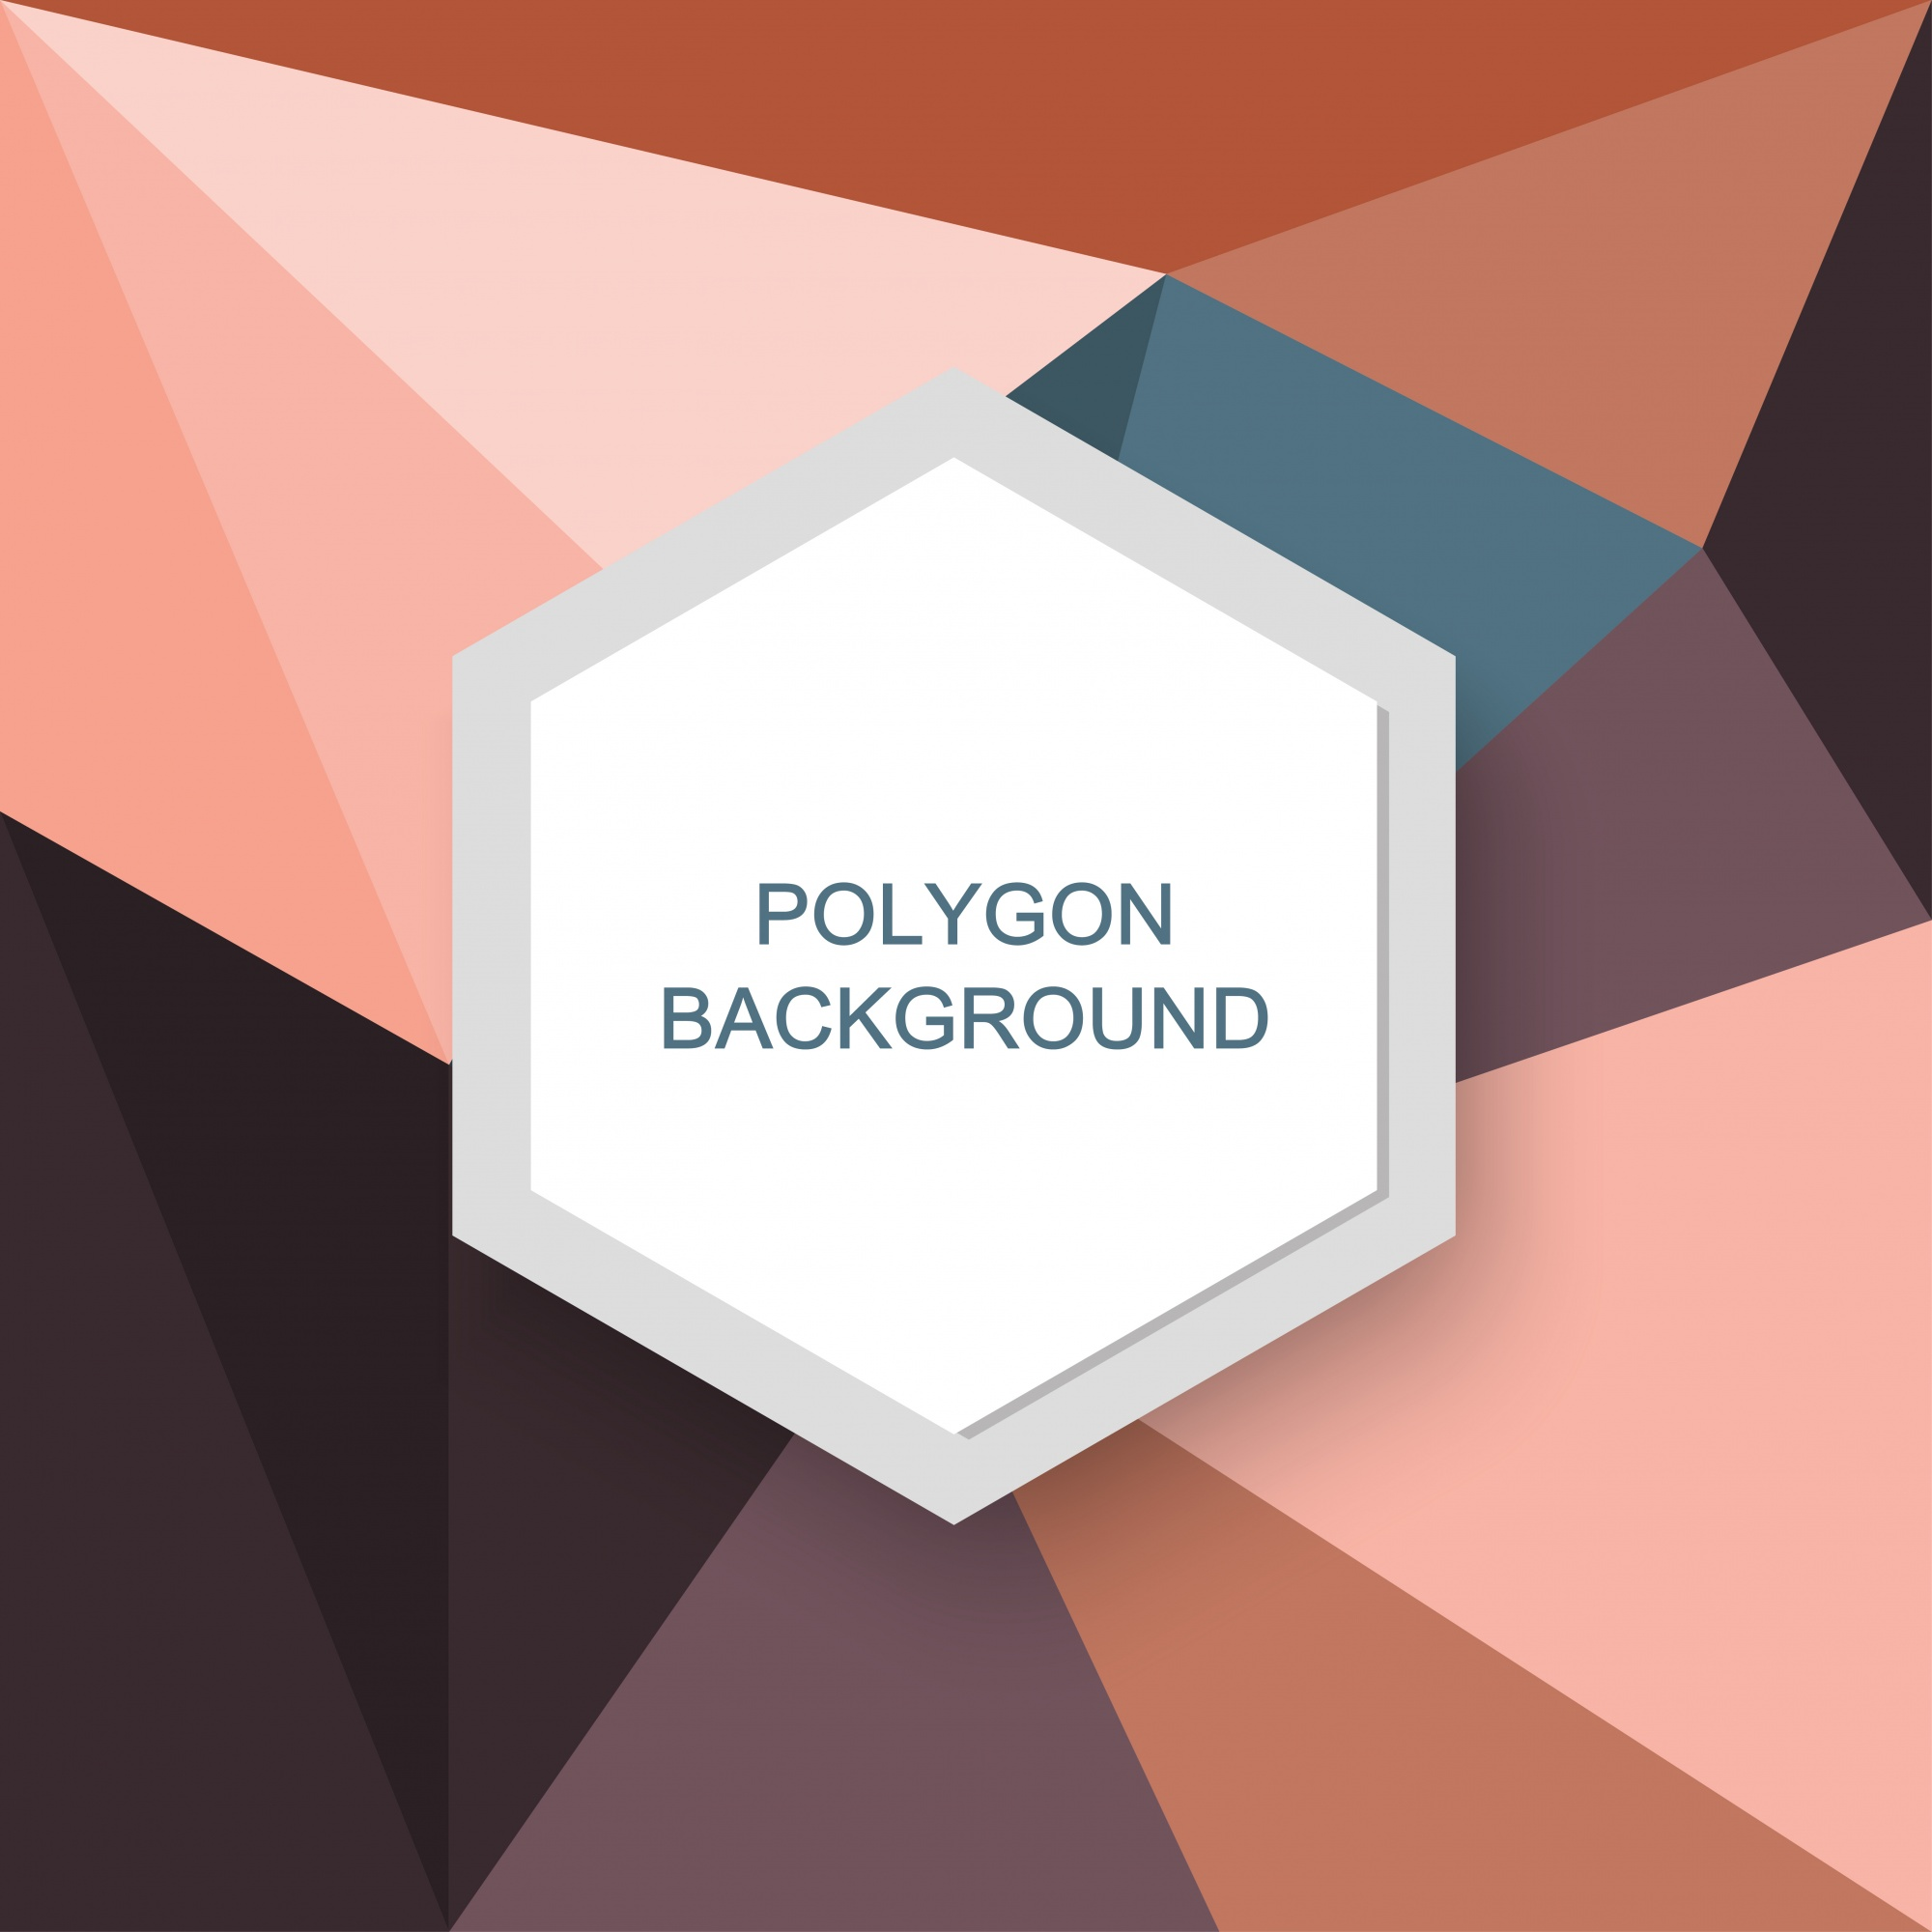 Geometric graphic background